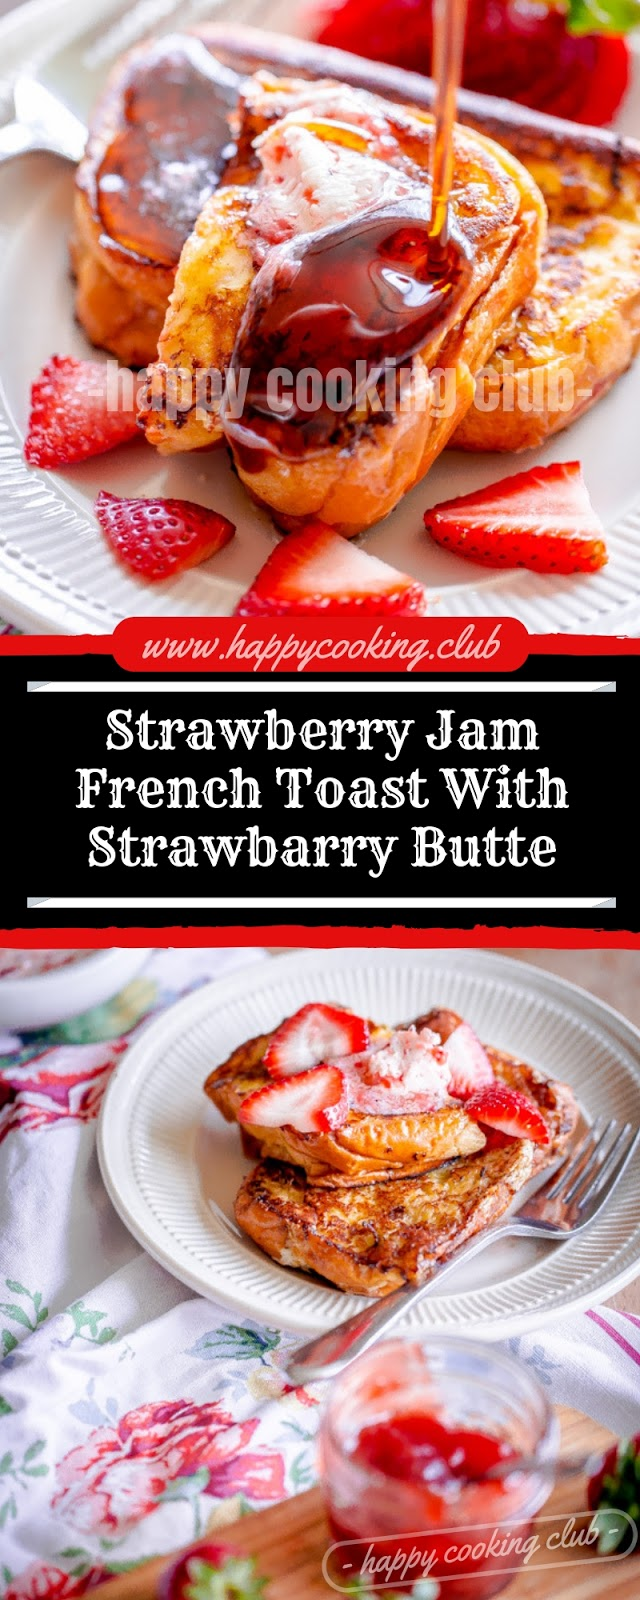 Strawberry Jam French Toast With Strawbarry Butte